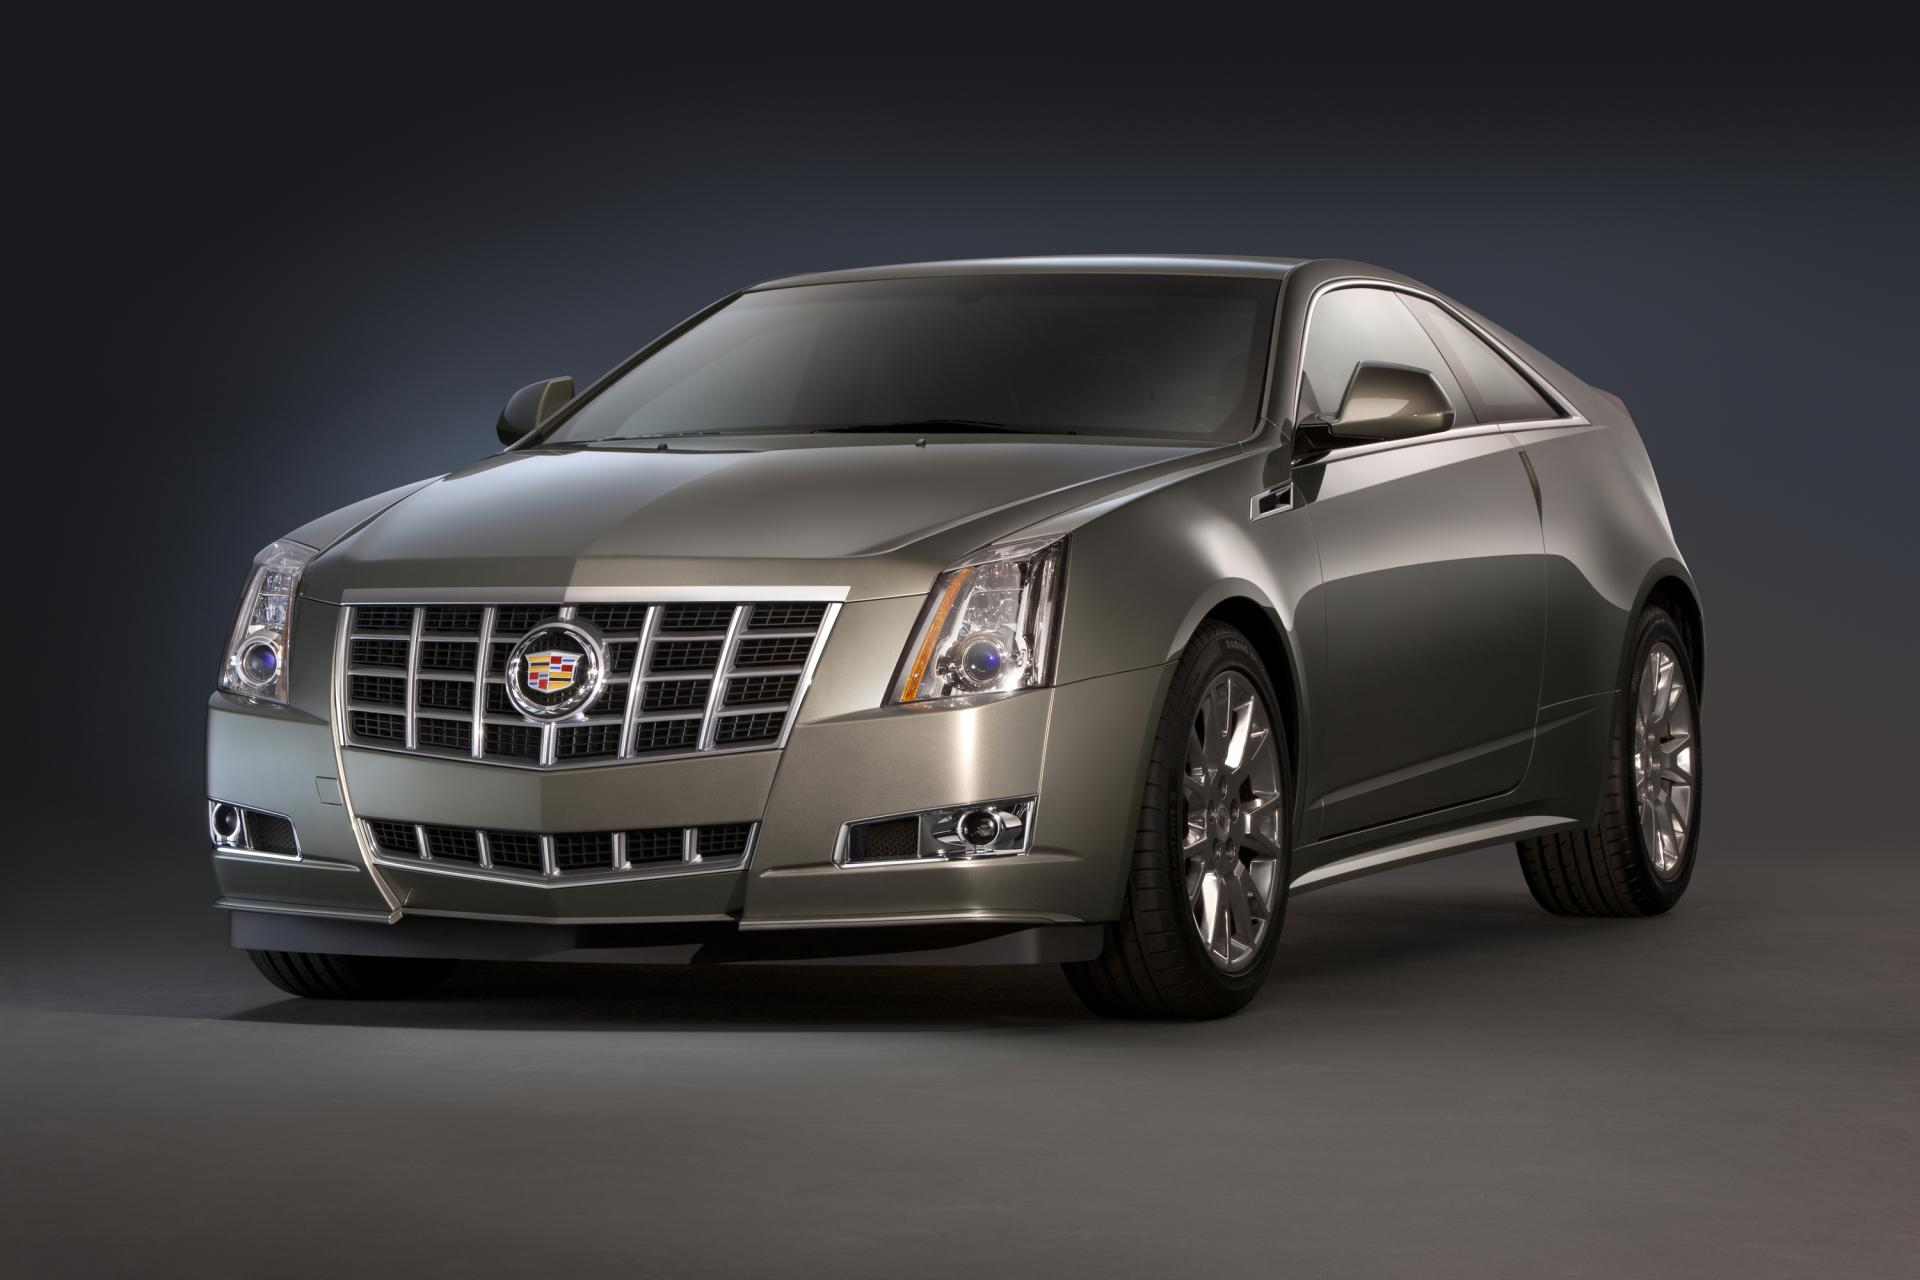 cts v cadillac for cargurus overview pic sale cars